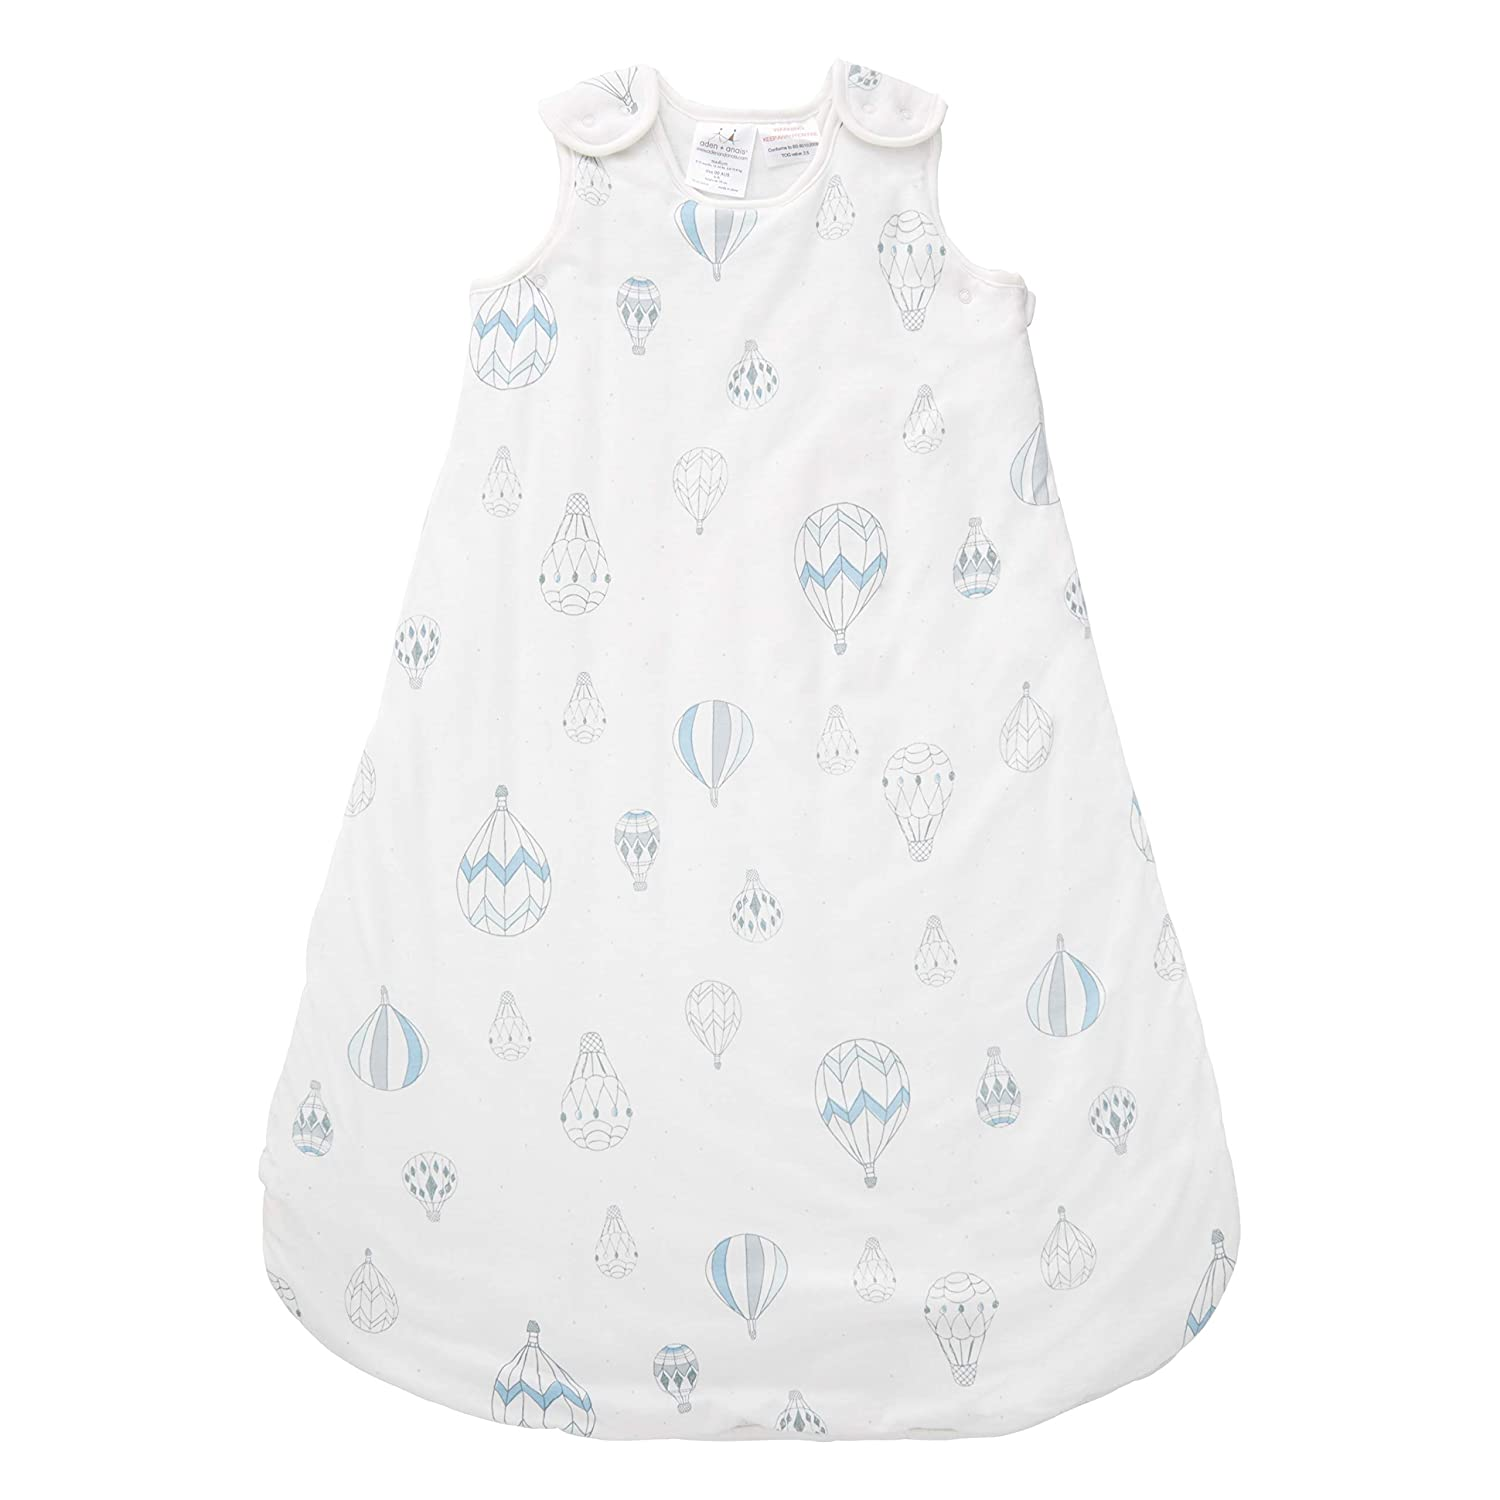 Aden + Anais - Saco de dormir night sky reverie, up 6-18 months: Amazon.es: Bebé